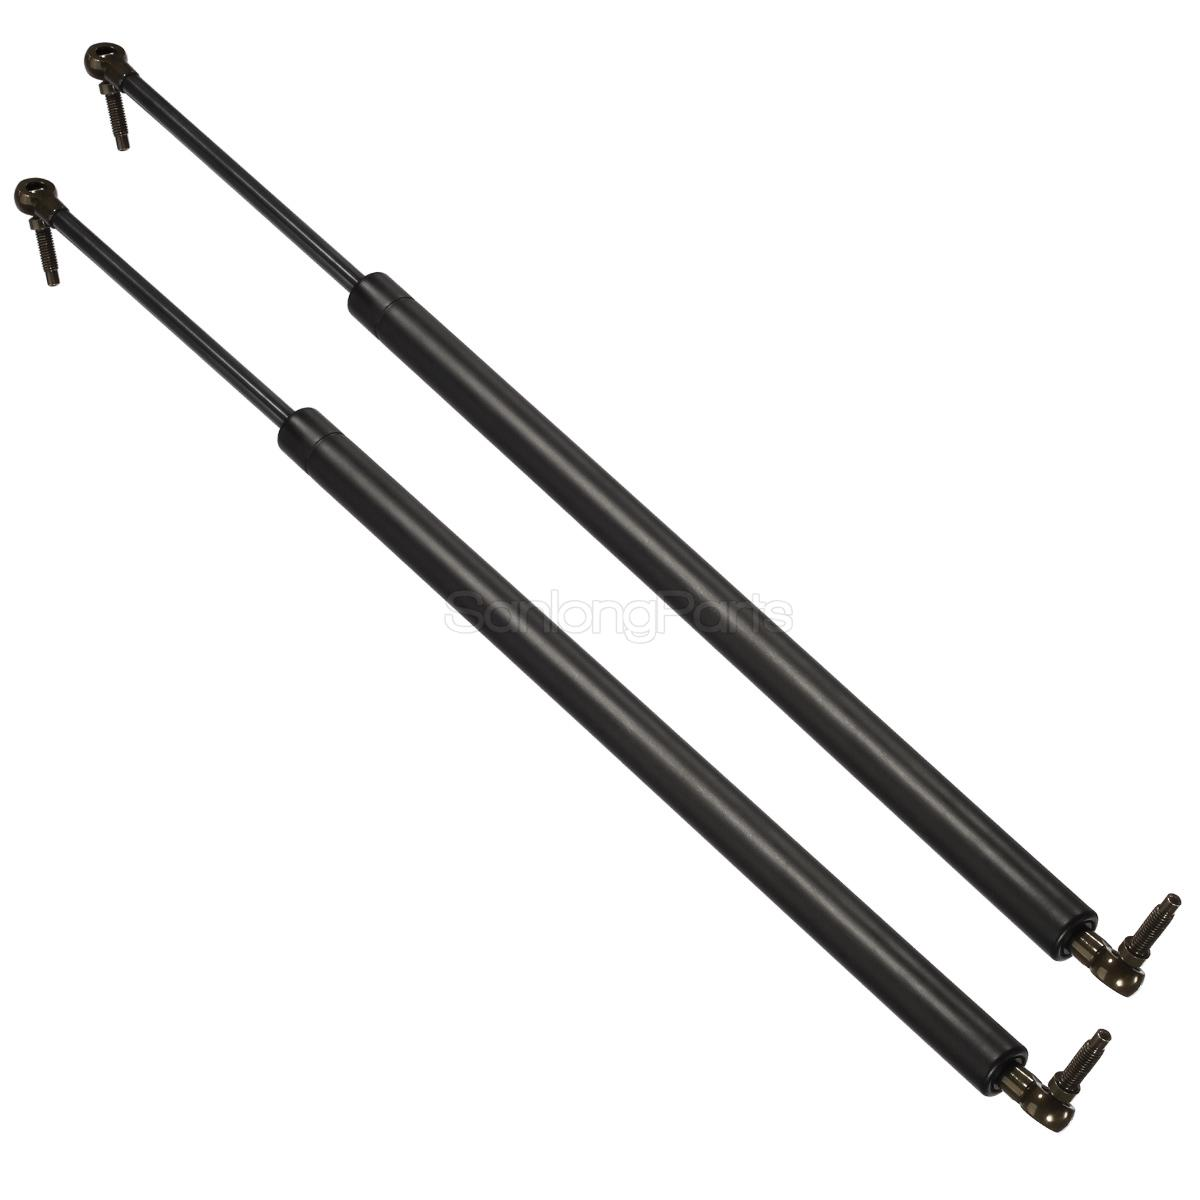 2pcs Hatch Gas Charged Lift Support Fits